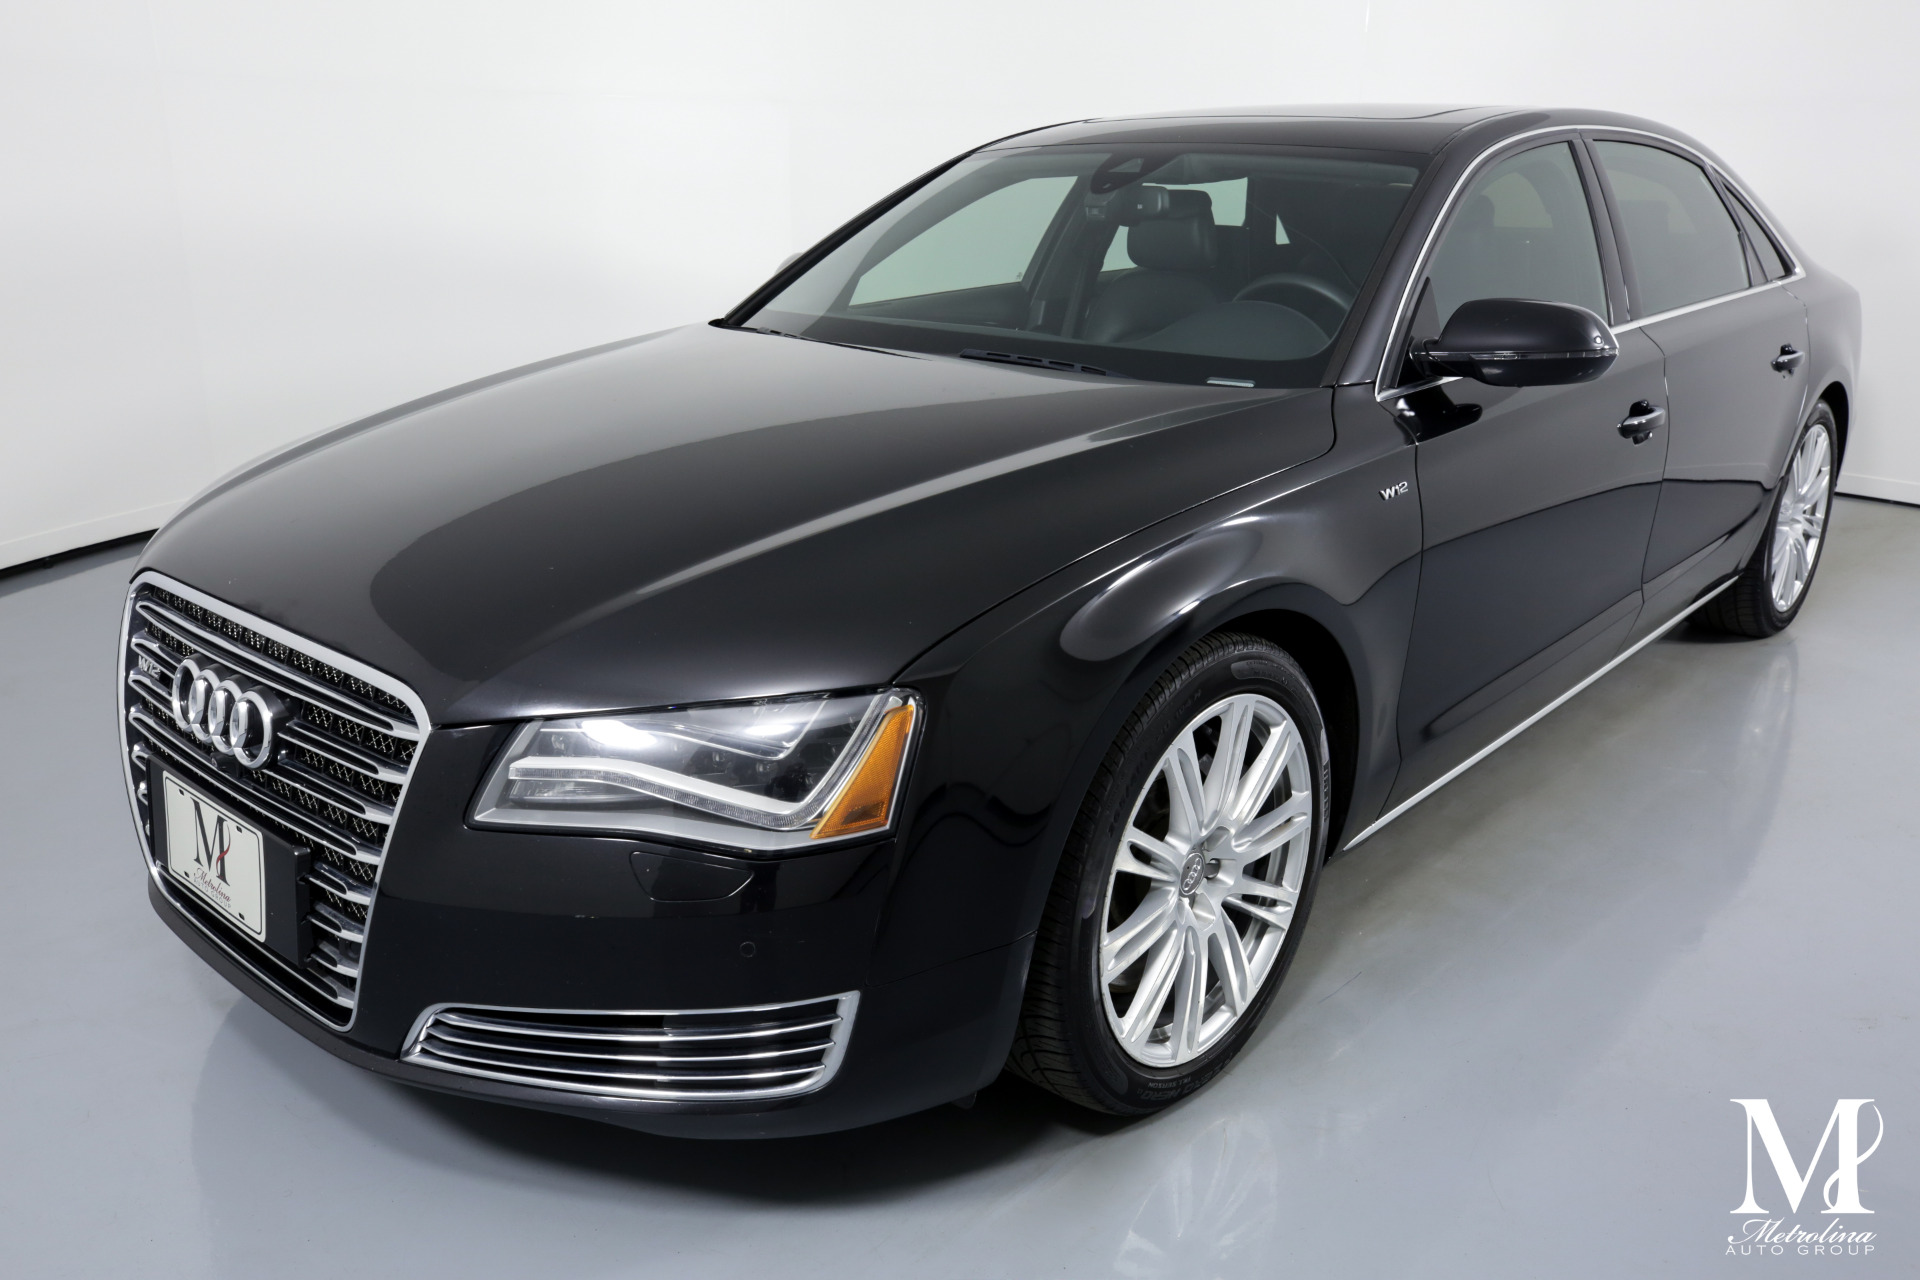 Used 2013 Audi A8 L W12 quattro for sale $37,596 at Metrolina Auto Group in Charlotte NC 28217 - 4